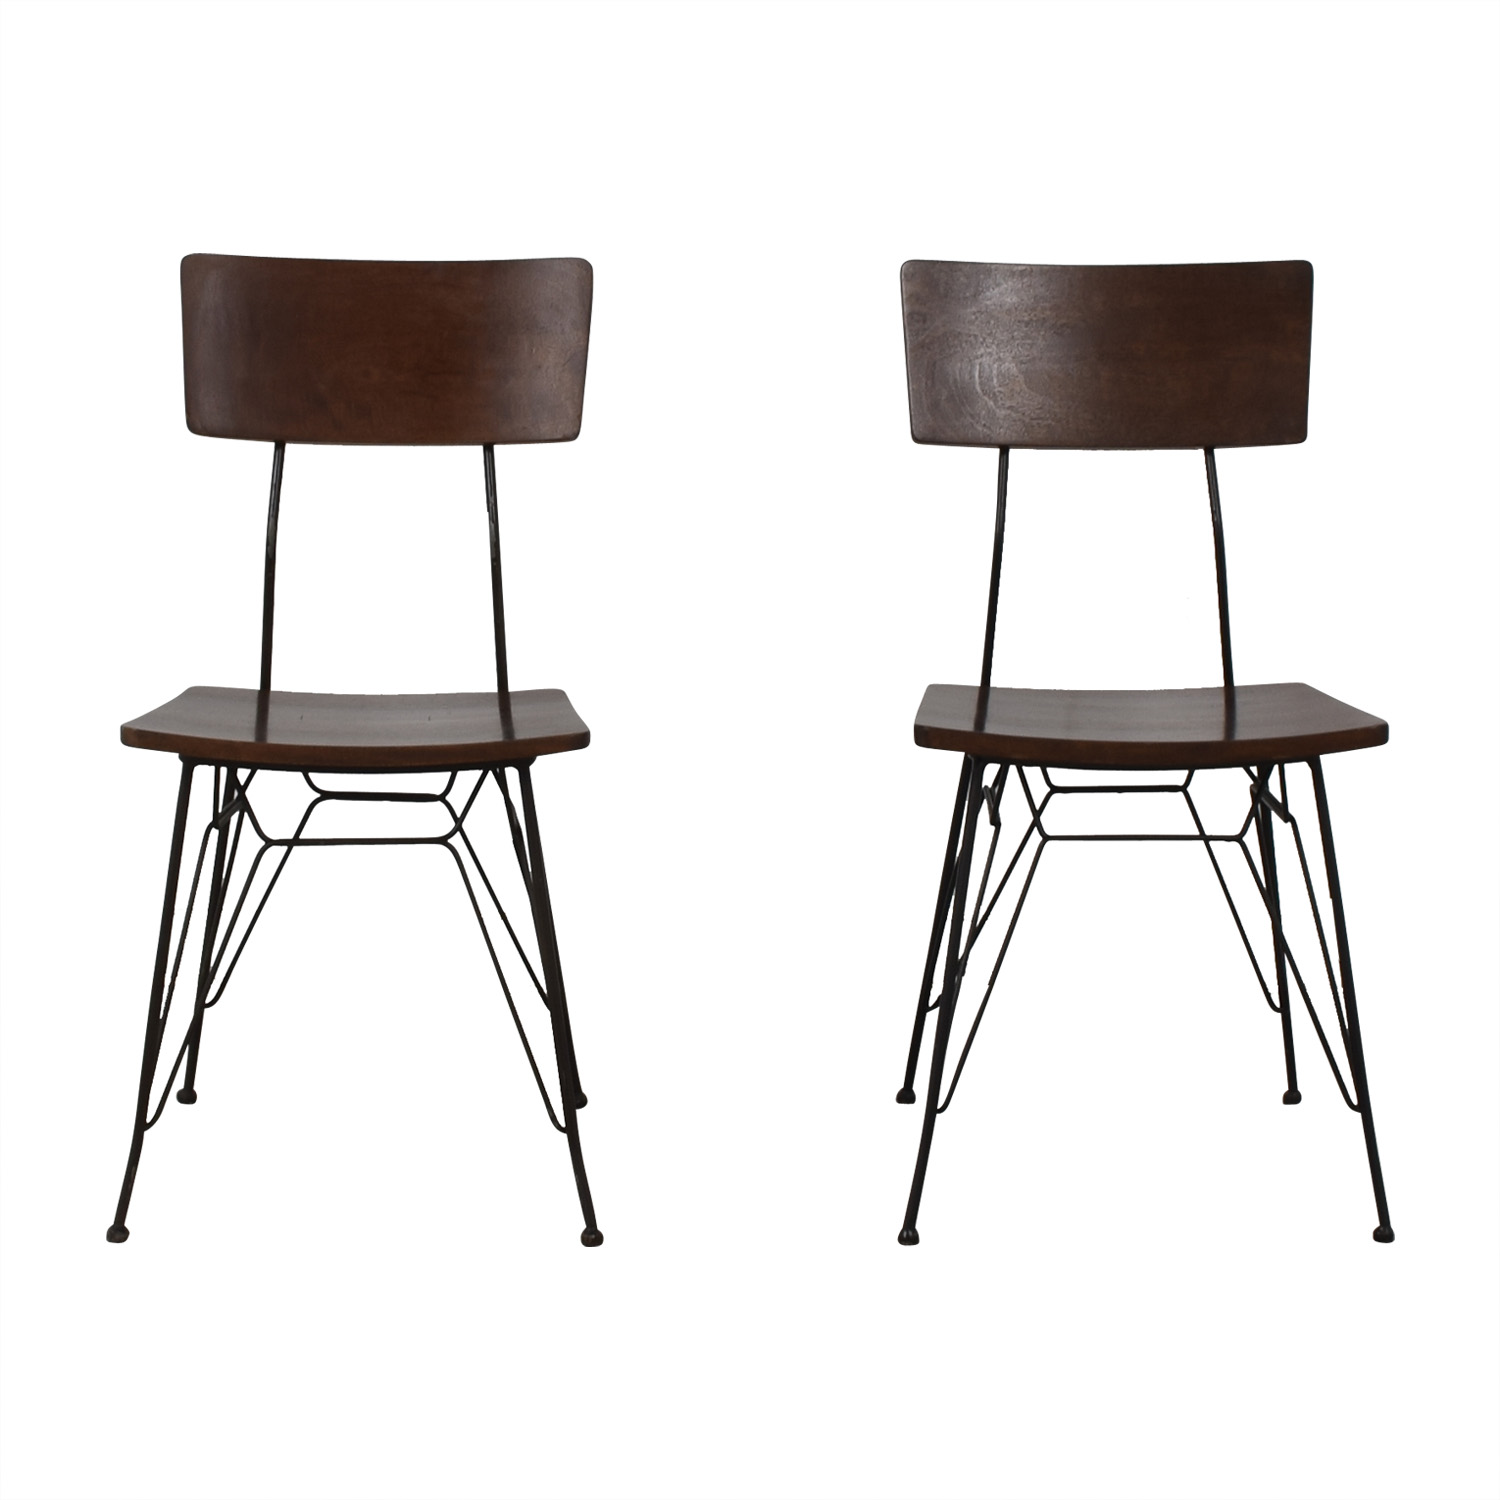 Crate & Barrel Crate & Barrel Elston Dining Chairs second hand